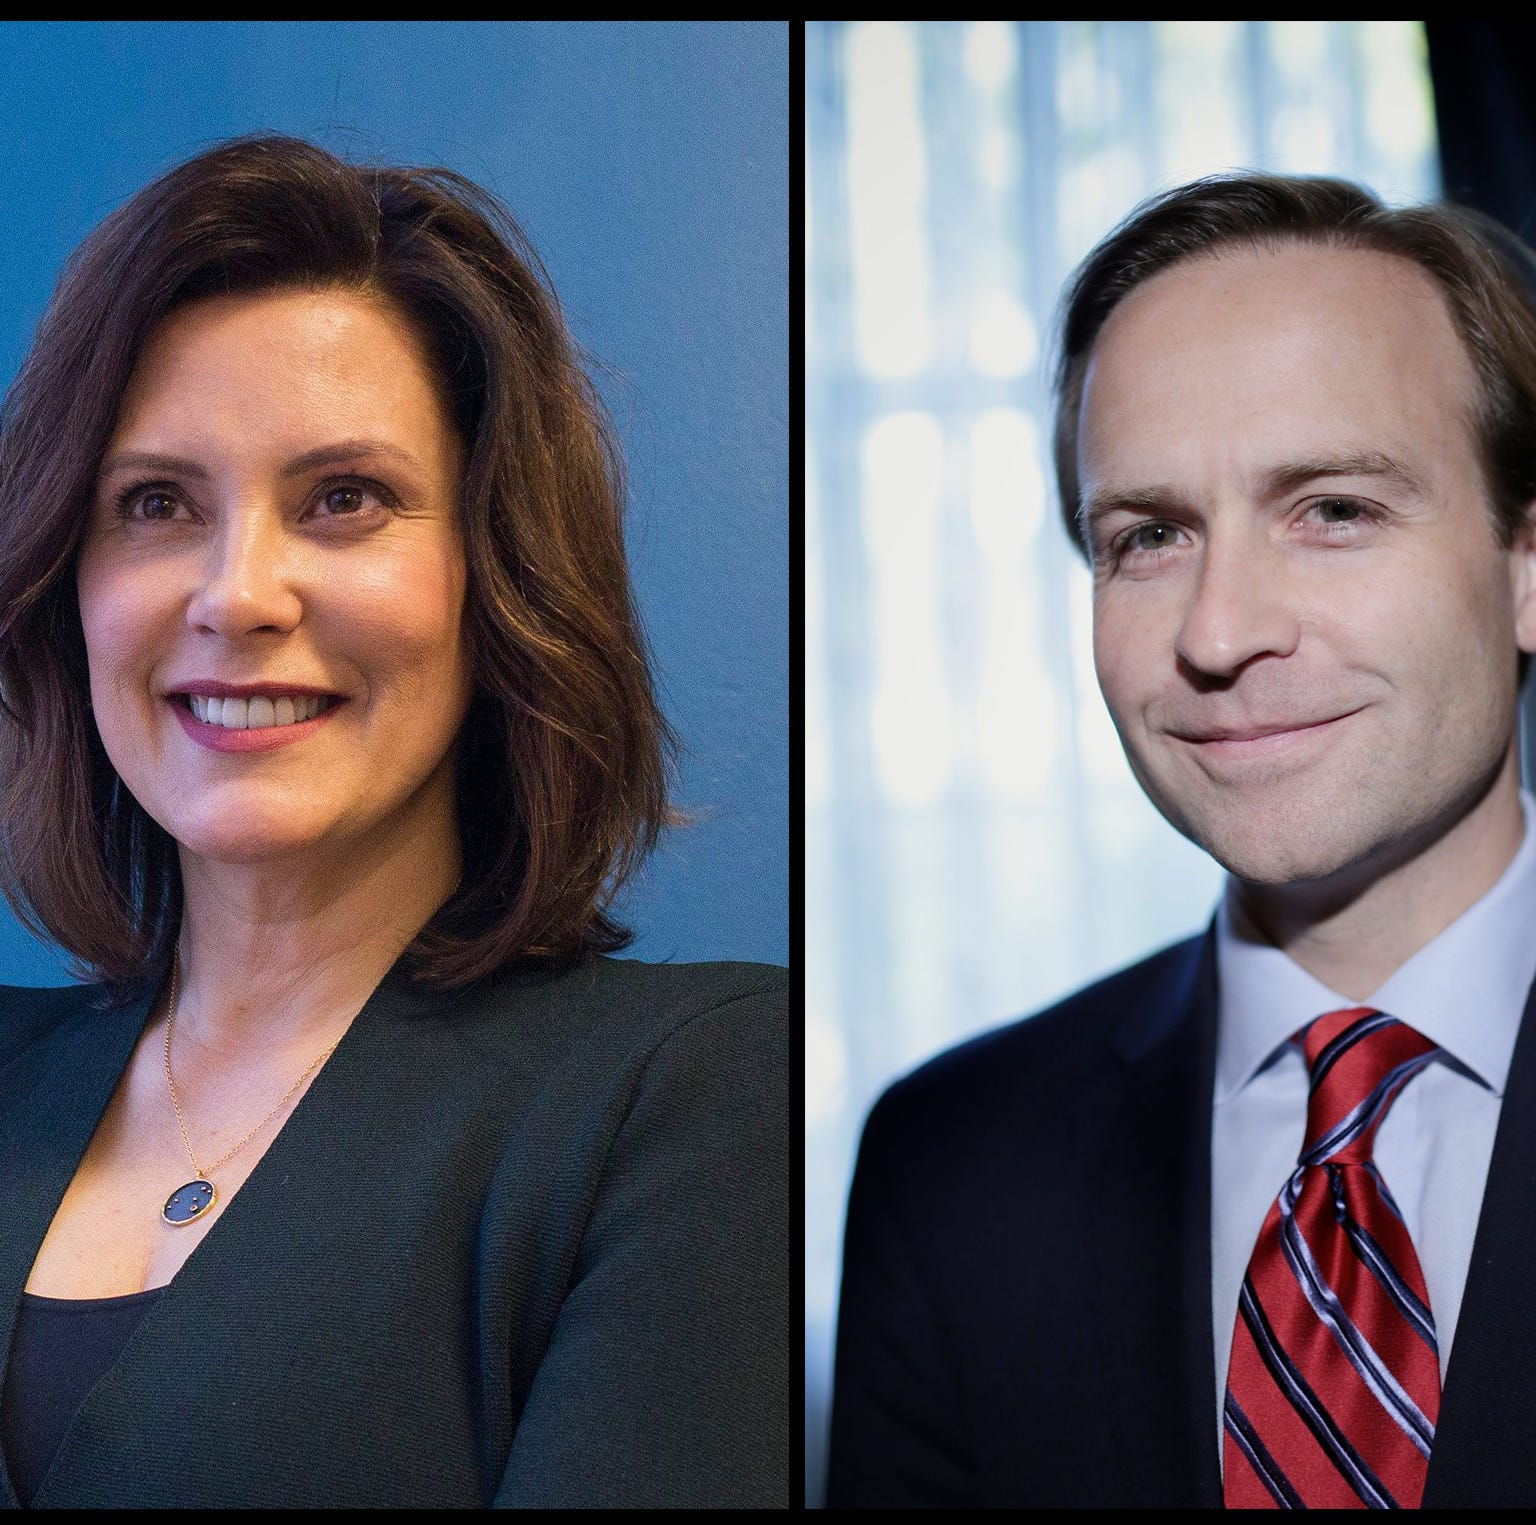 Whitmer and Calley offer a contest for grown-ups